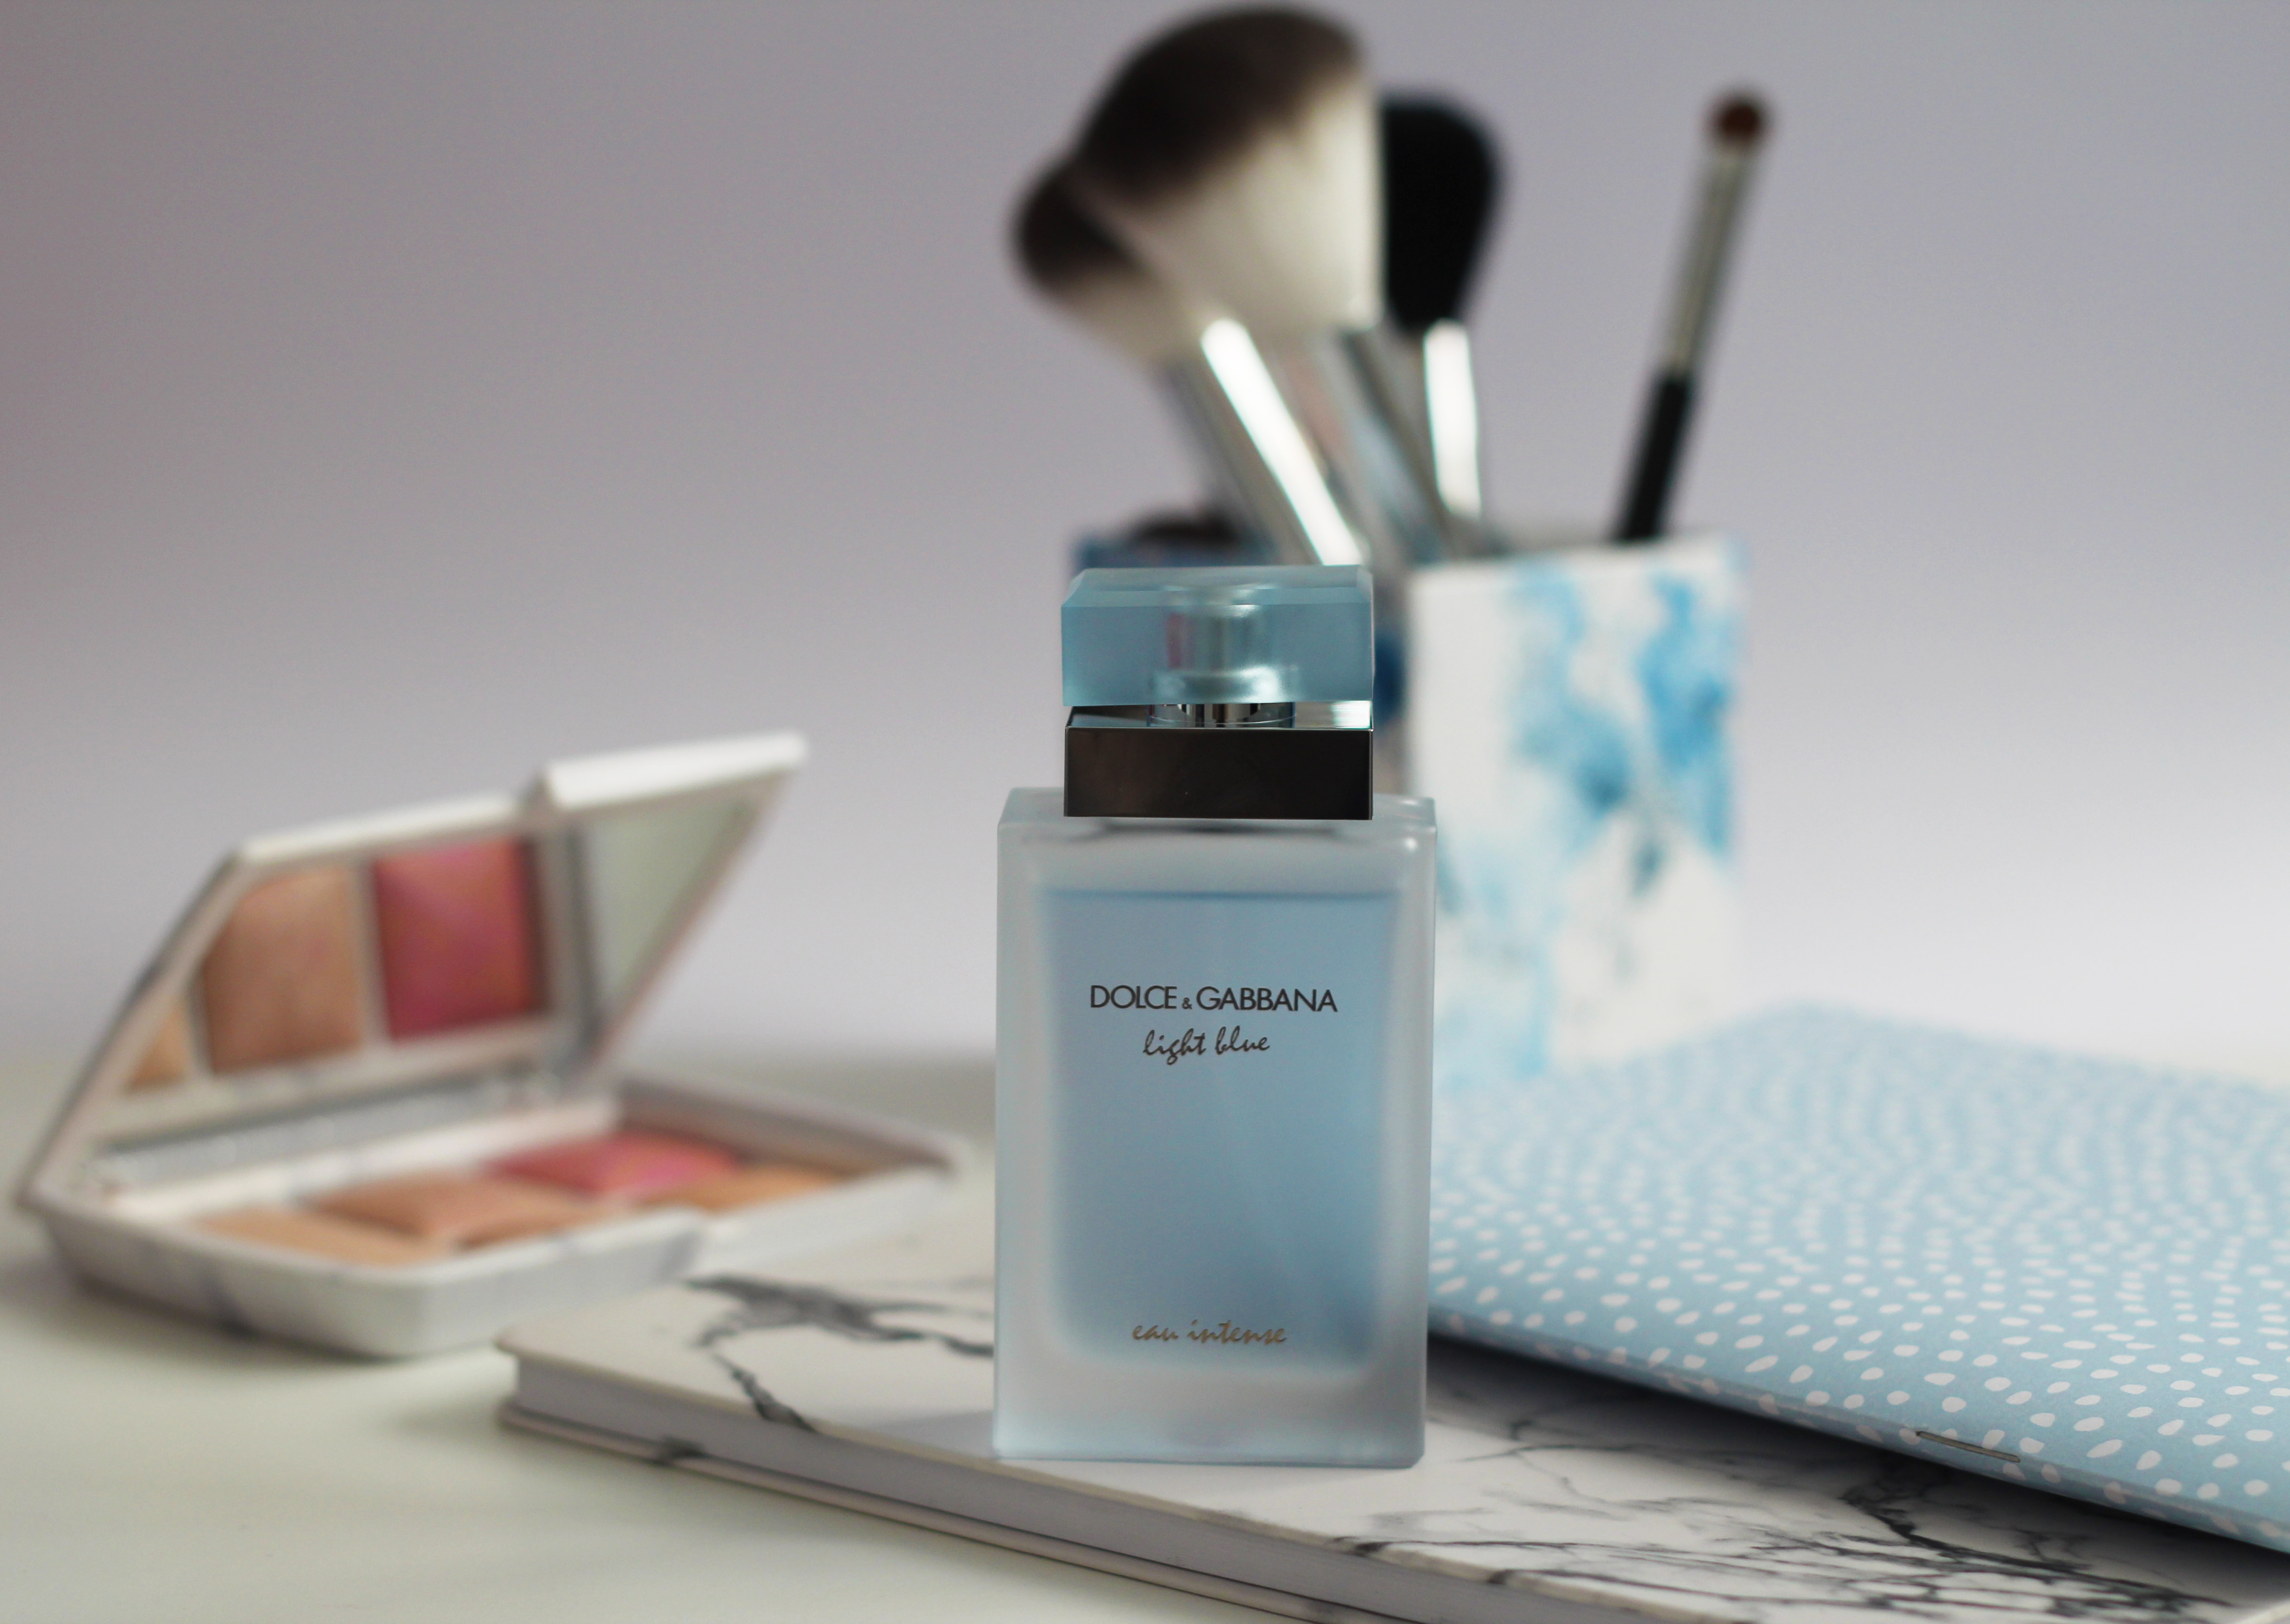 Dolce & Gabbana Eau Intense Review - Ms Tantrum Blog